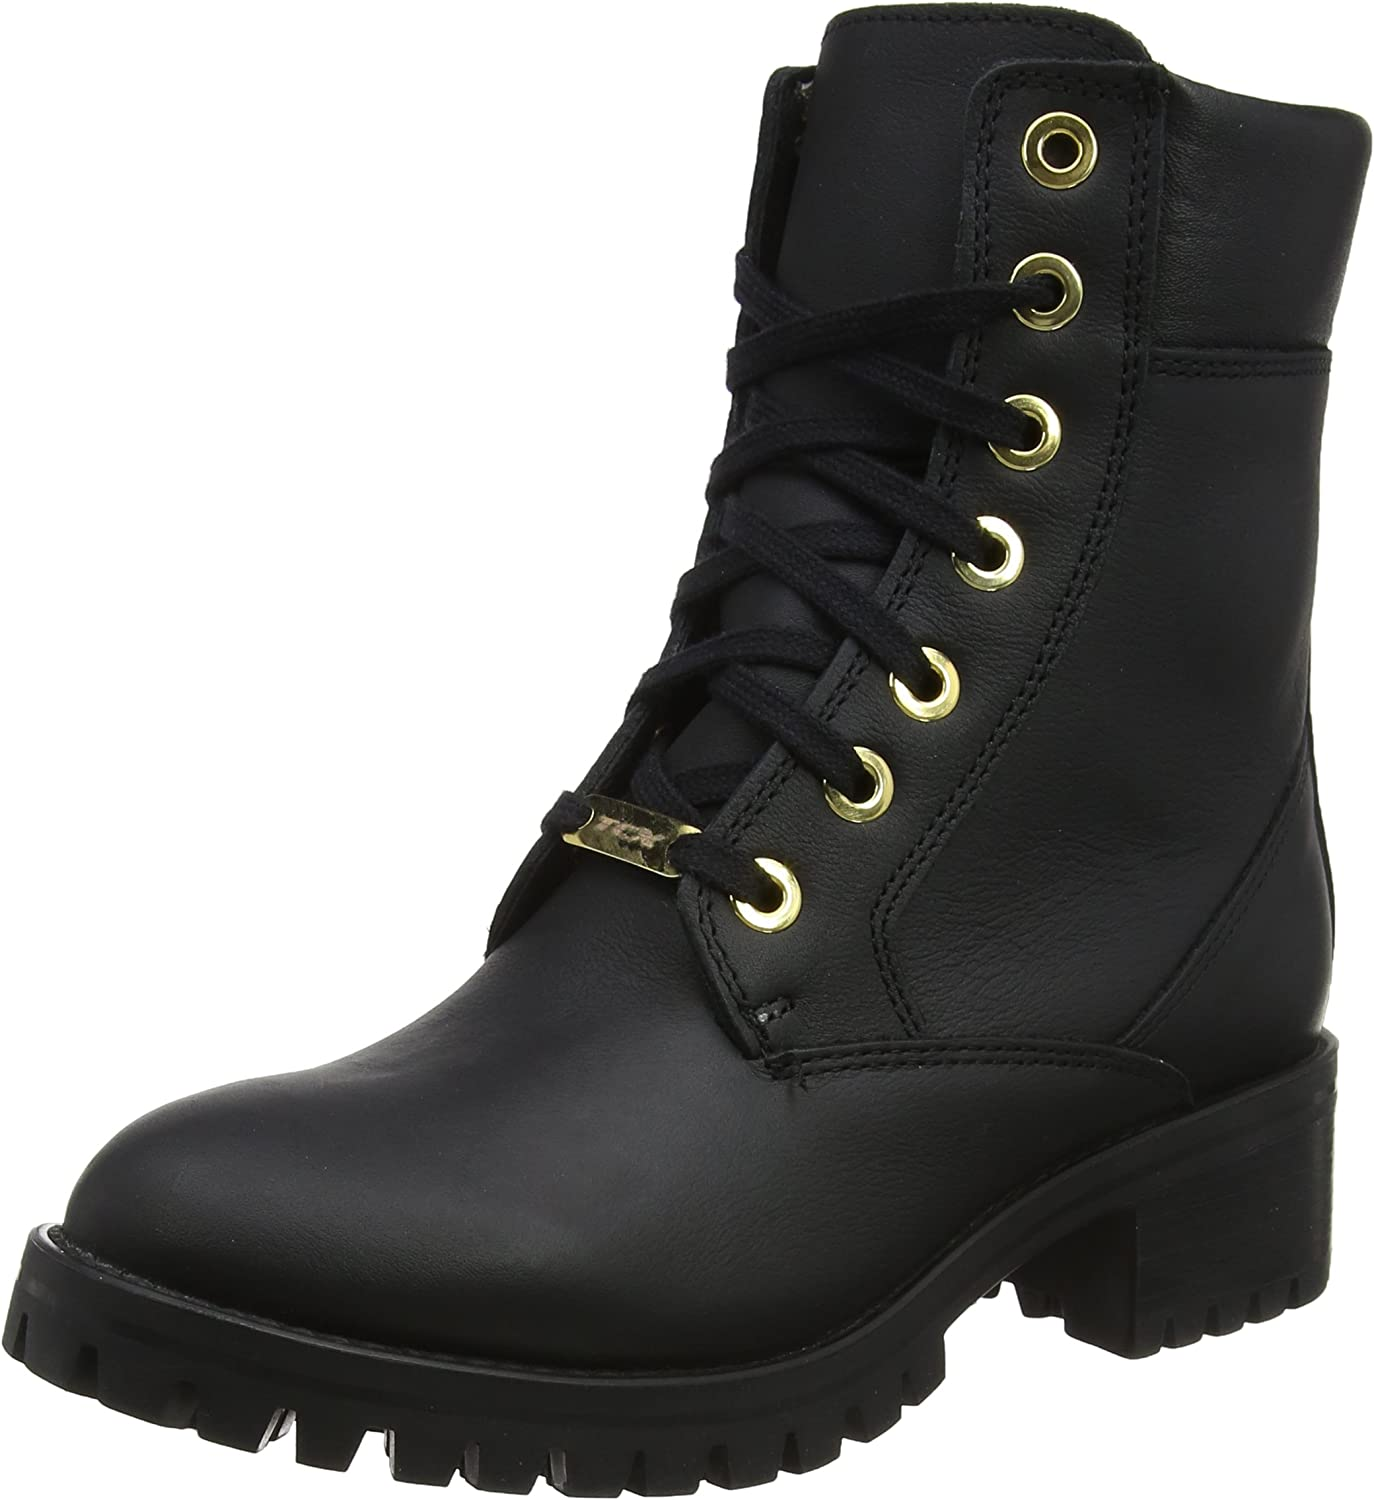 Black TCX Lady Smoke Motorcycle Boots Size 36